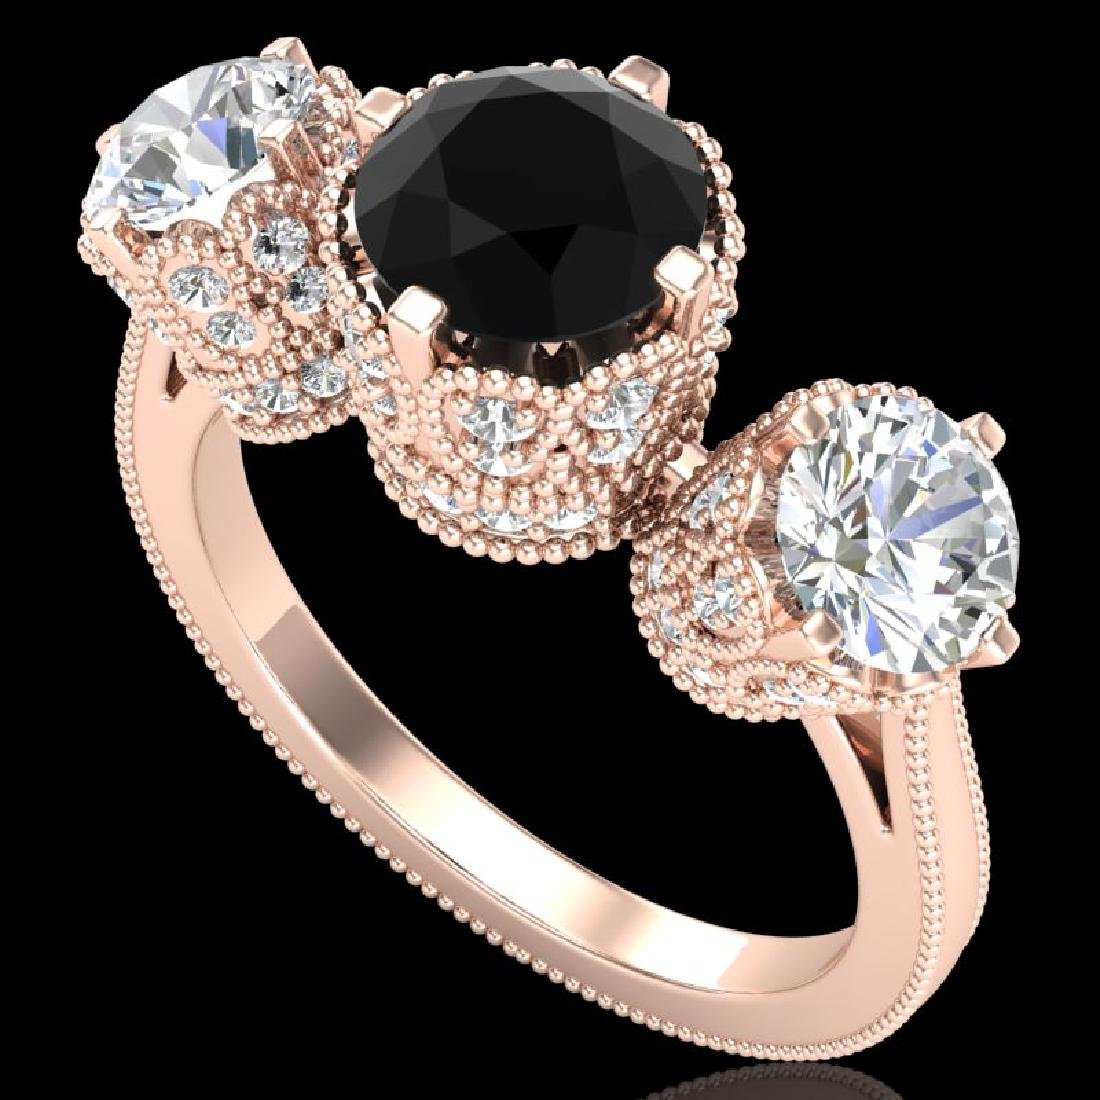 3.06 CTW Fancy Black Diamond Solitaire Art Deco 3 Stone